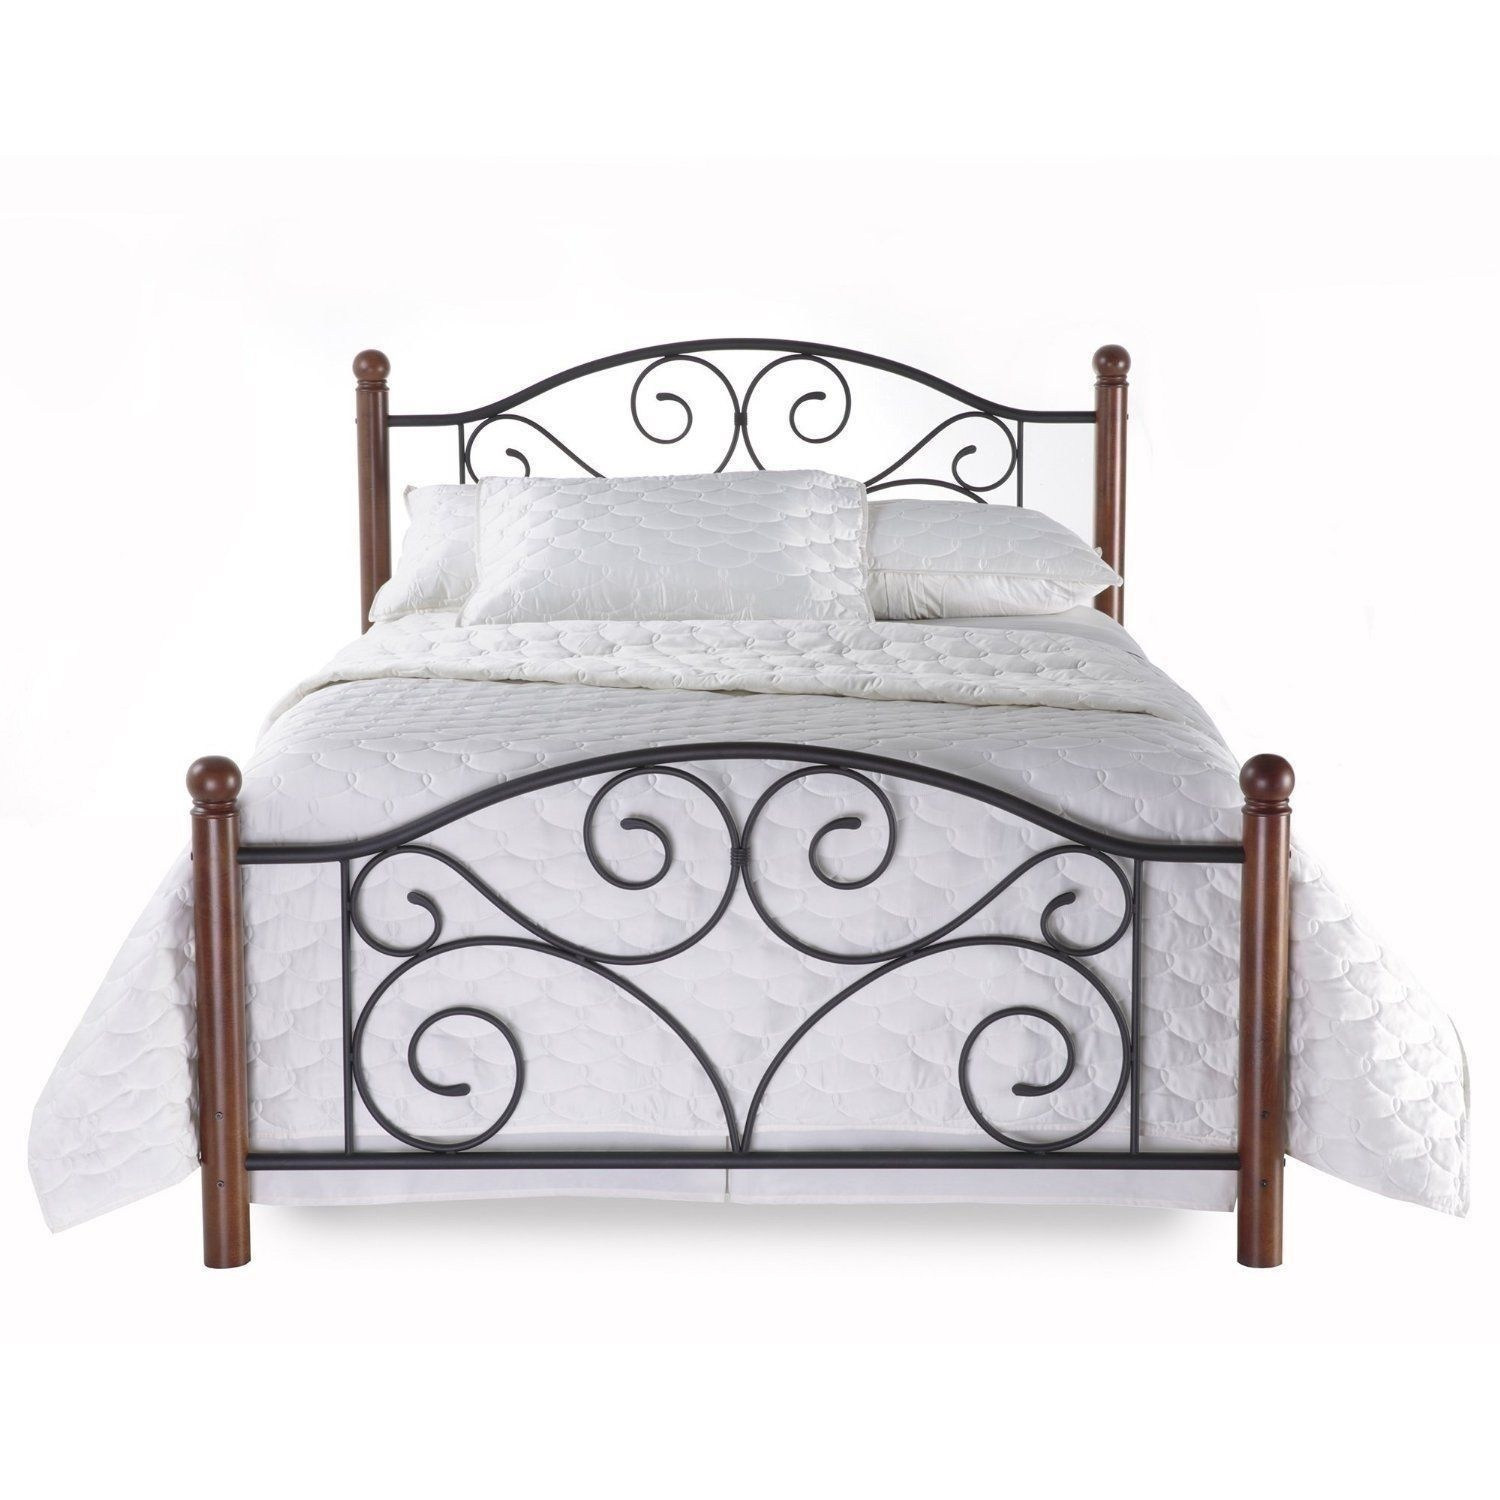 New full queen king size metal wood mattress bed frame for King size bed frame and mattress